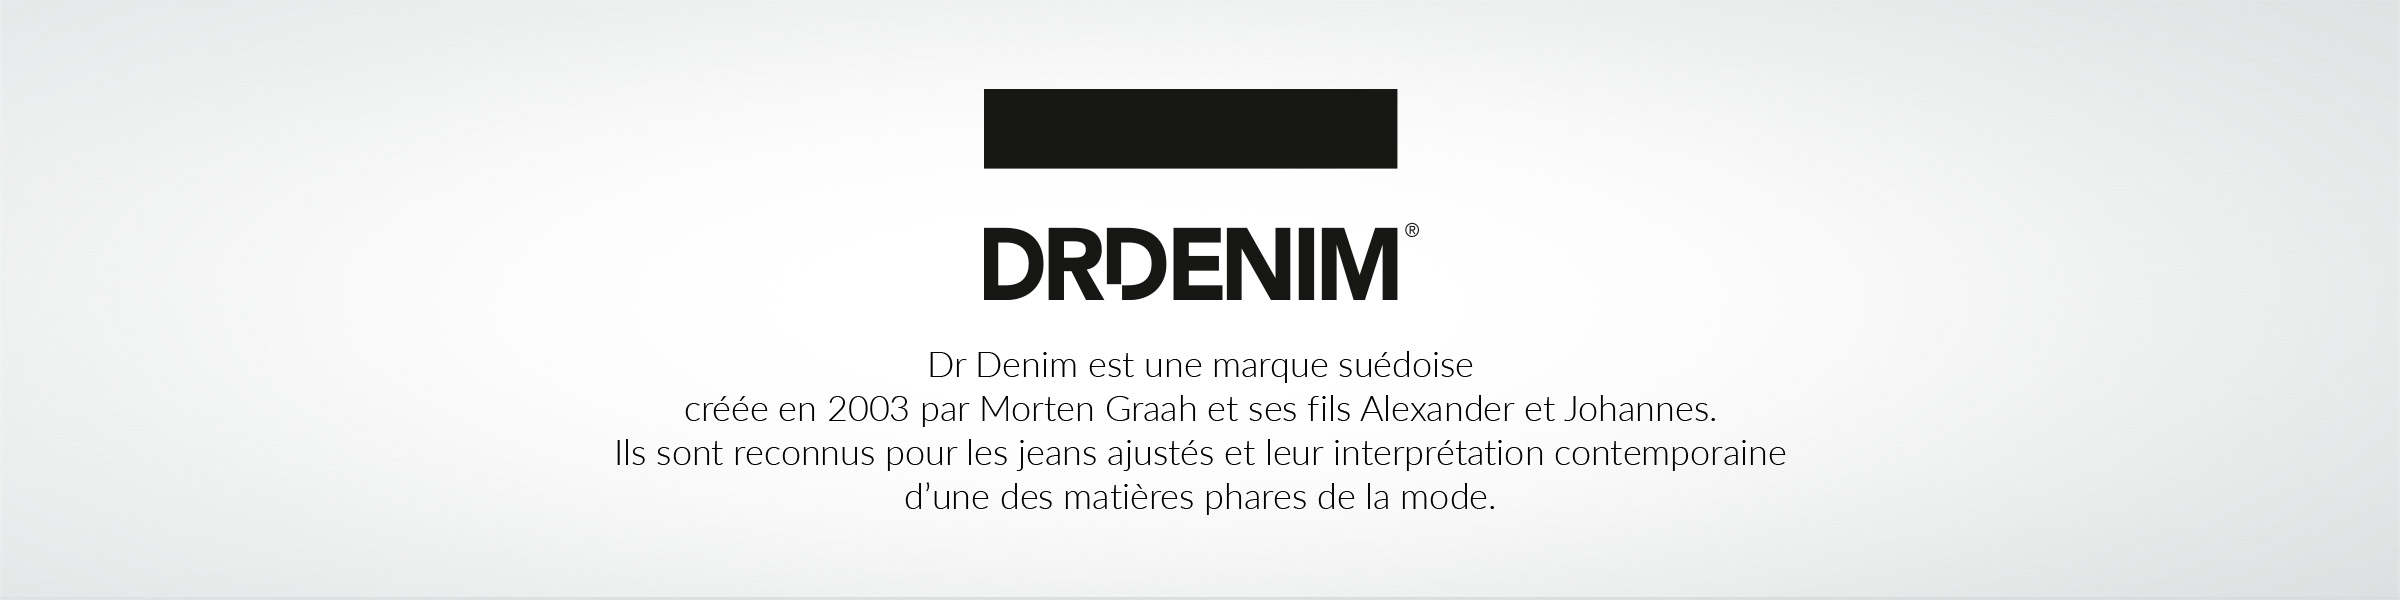 032288 DR DENIM